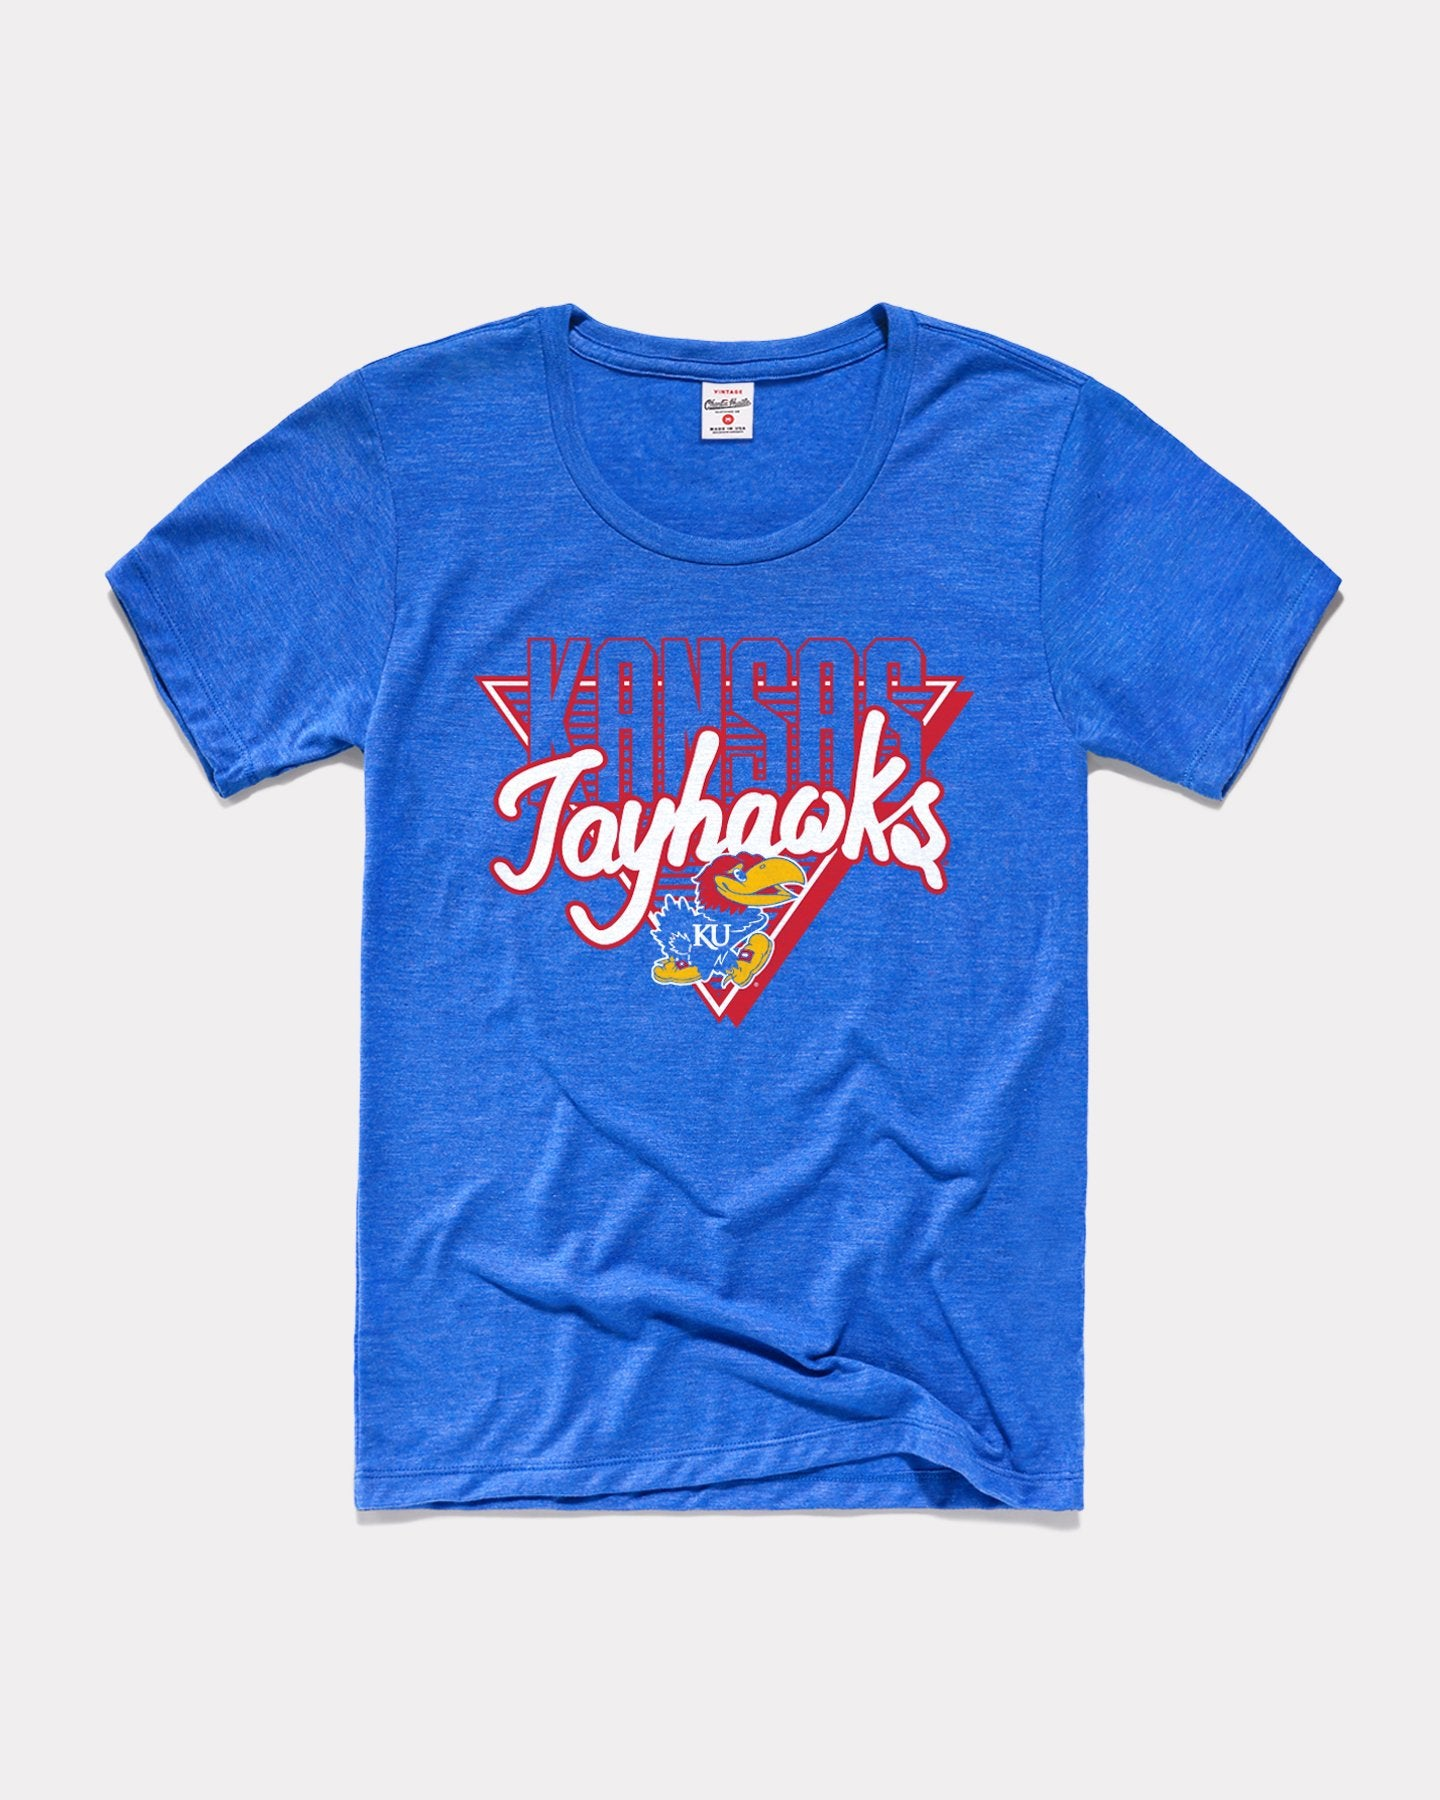 Royal Blue Kansas Jayhawks 90's Throwback Women's T-Shirt